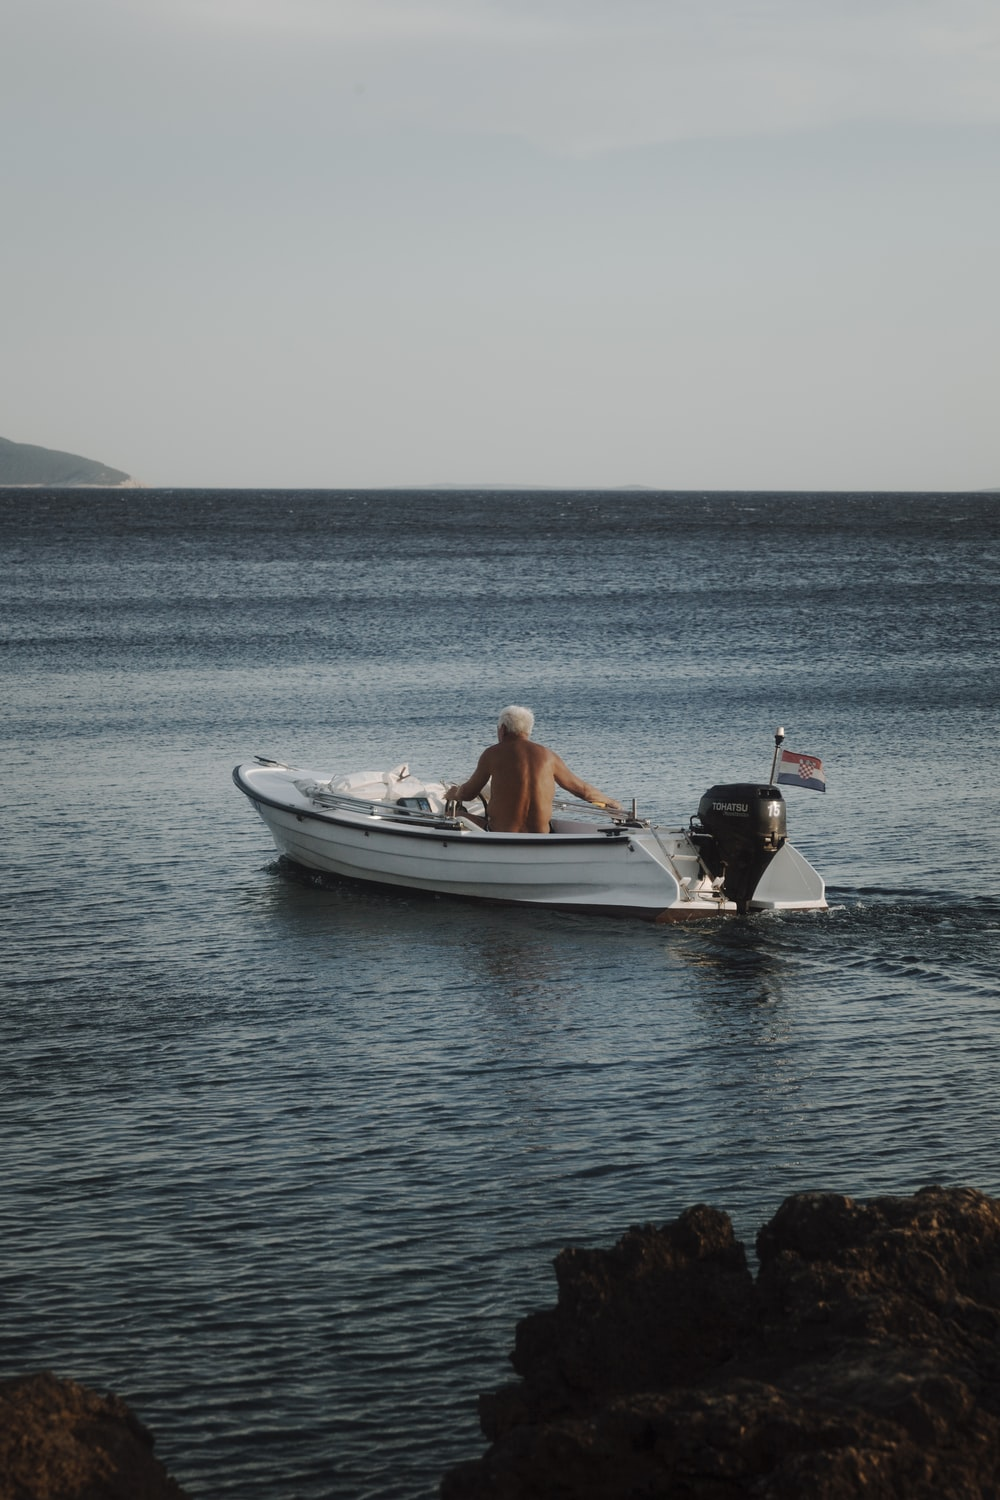 man in black shirt and black shorts sitting on white and blue boat on sea during